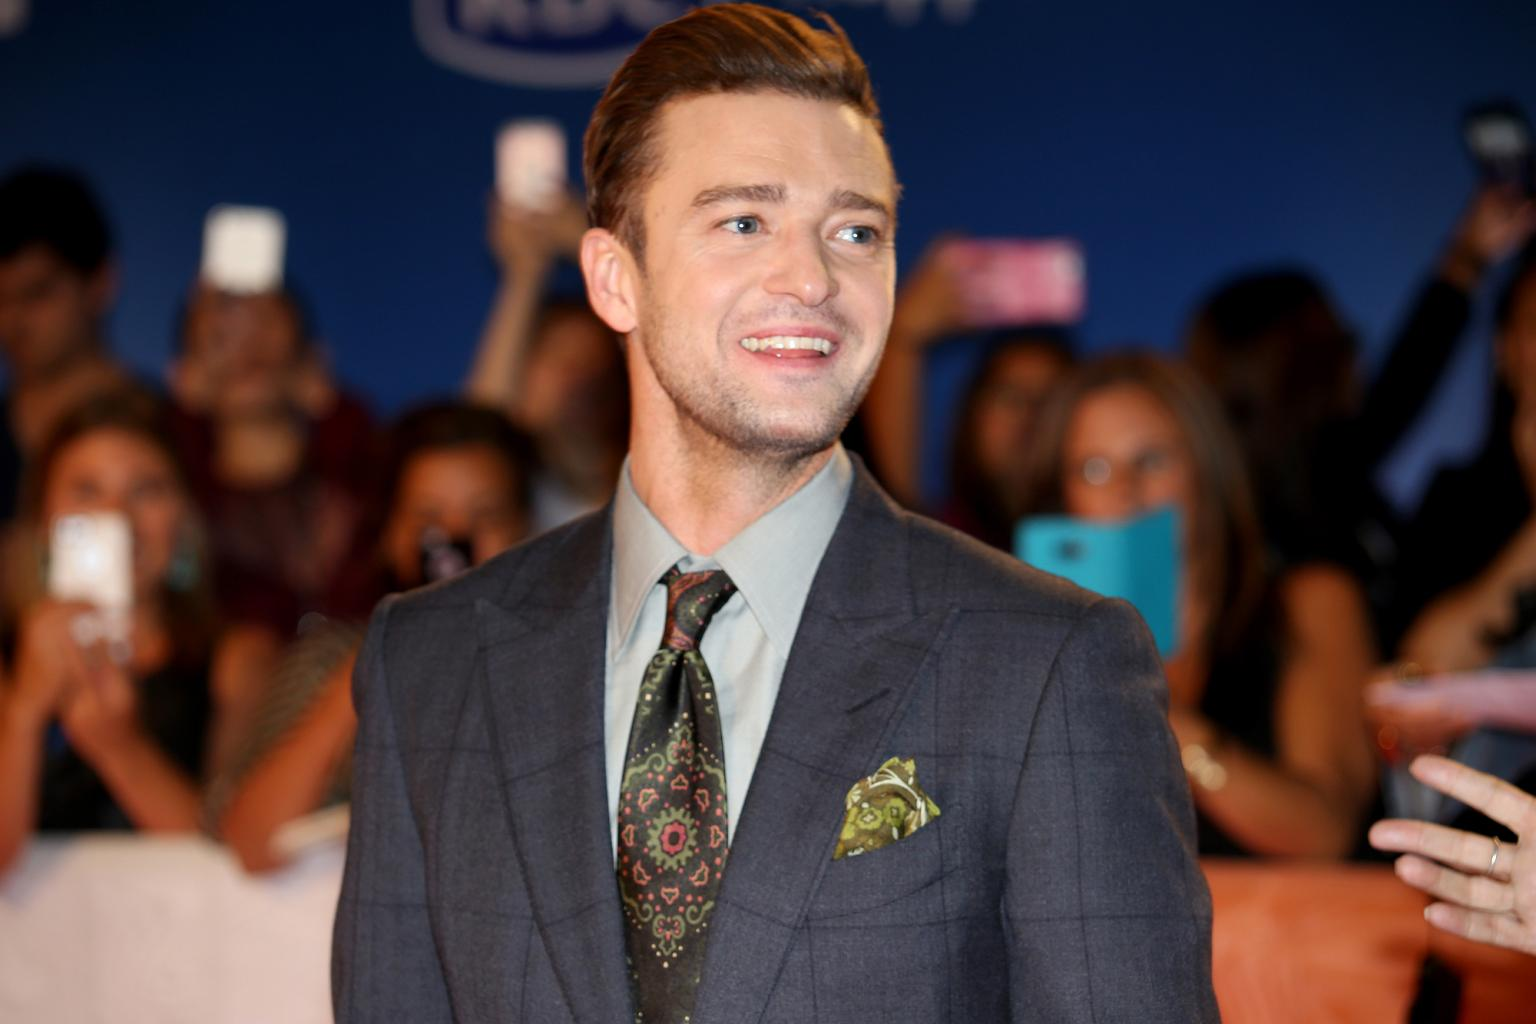 Justin Timberlake on Expanding His Family: 'I'm Having a Lot of Fun Practicing'